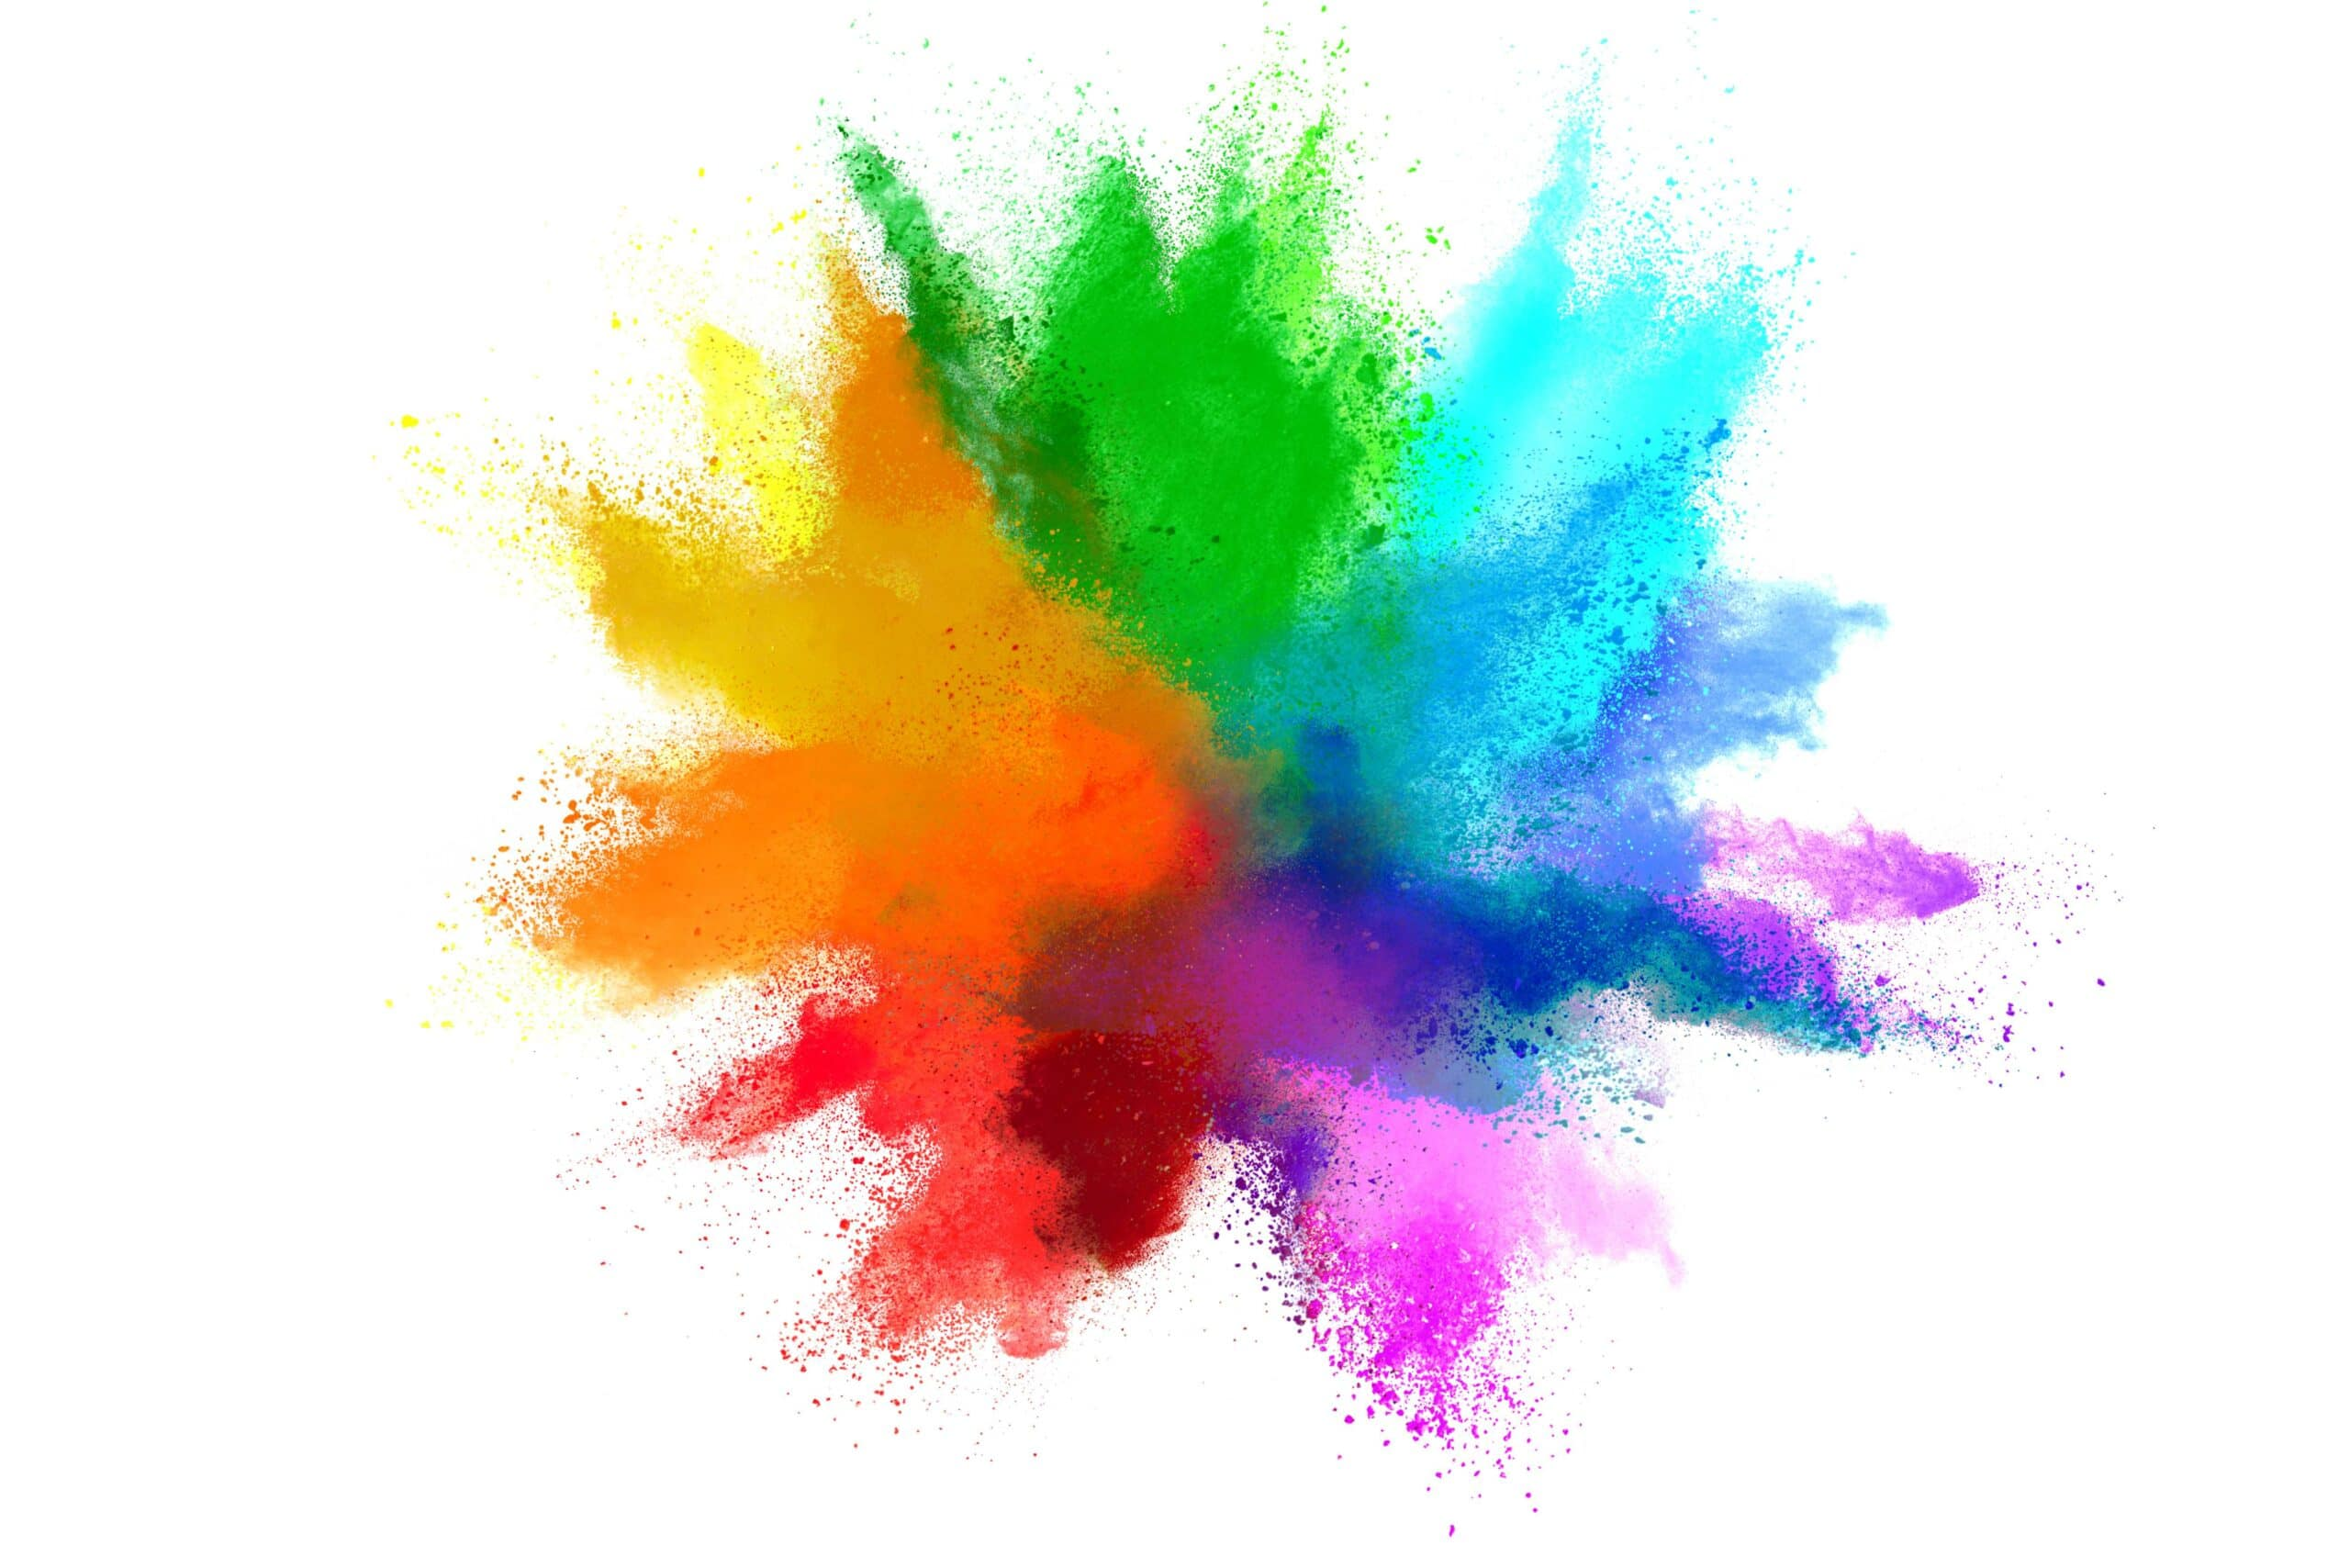 The Importance of Colour thumbnail image